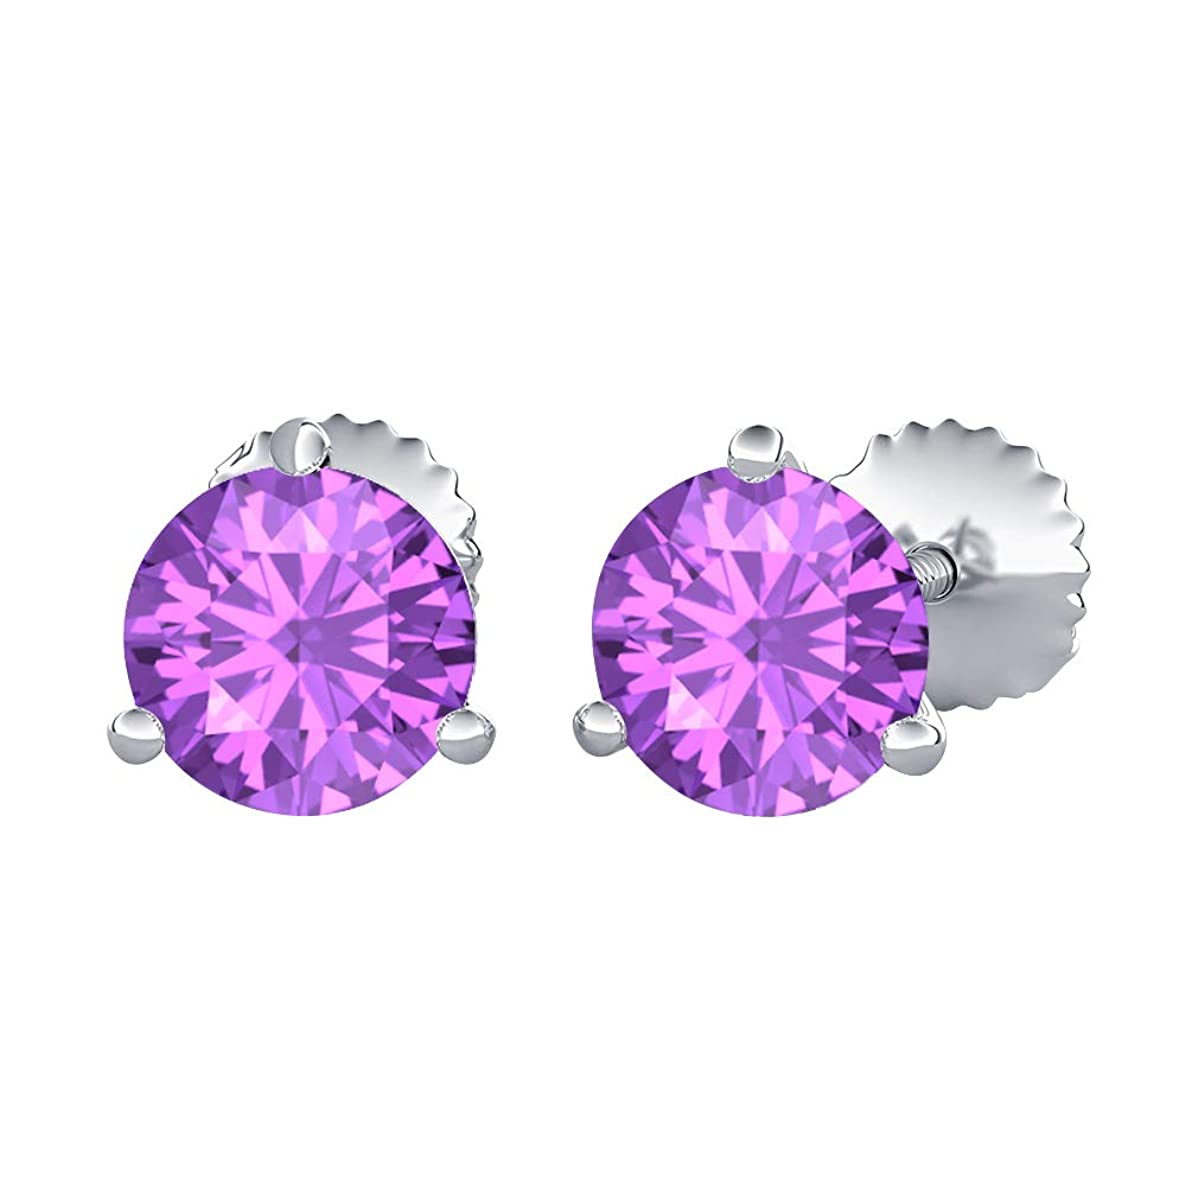 SVC-JEWELS Round Cut Created Gemstones (5MM) Solitaire Stud Earrings 14K White Gold Over .925 Sterling Silver For Women's